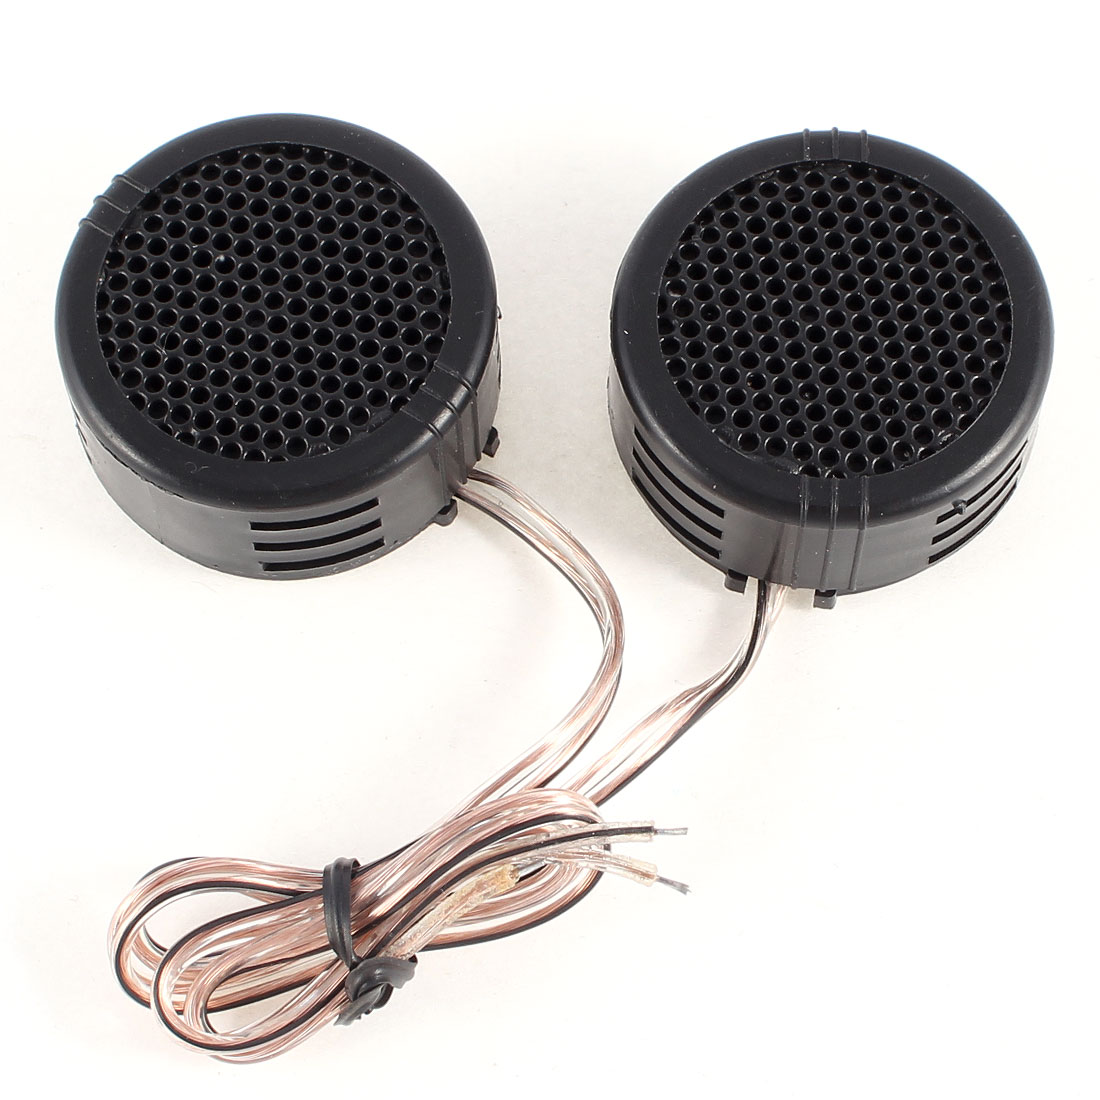 2 Pcs Black Dome Car Auto Tweeters Speakers 500W